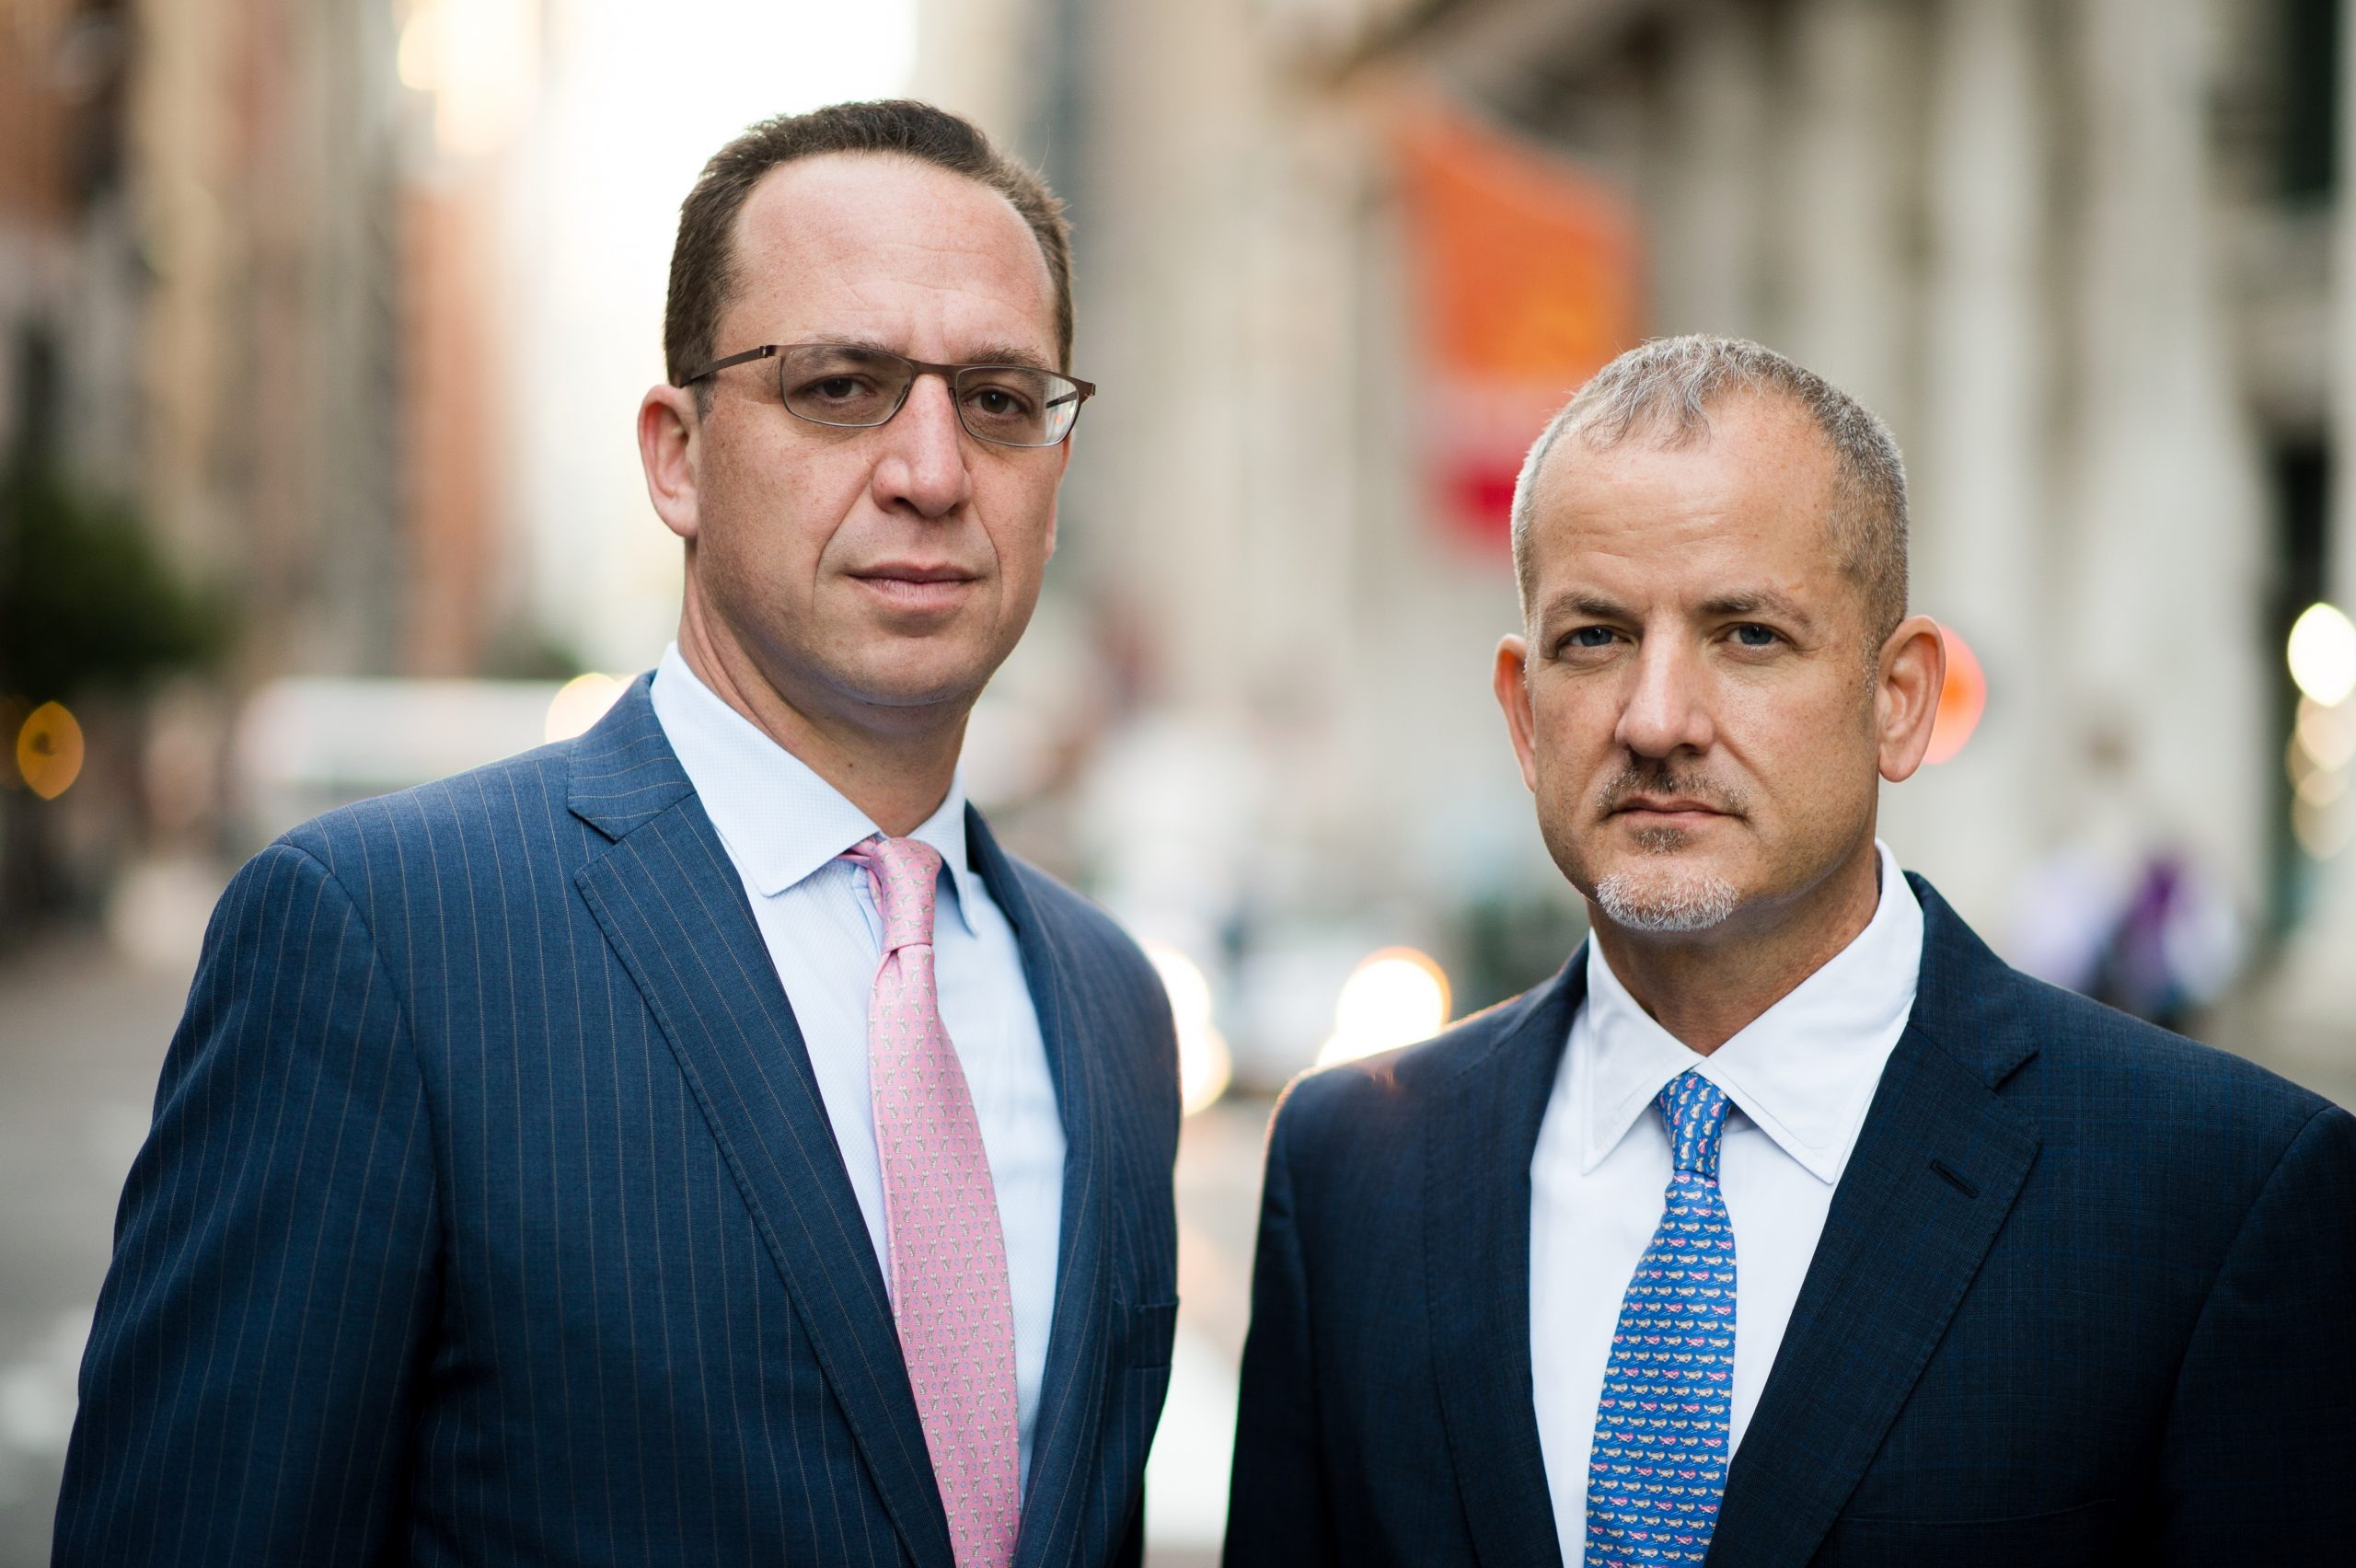 Greg Hach and Michael Rose of Hach & Rose, LLP